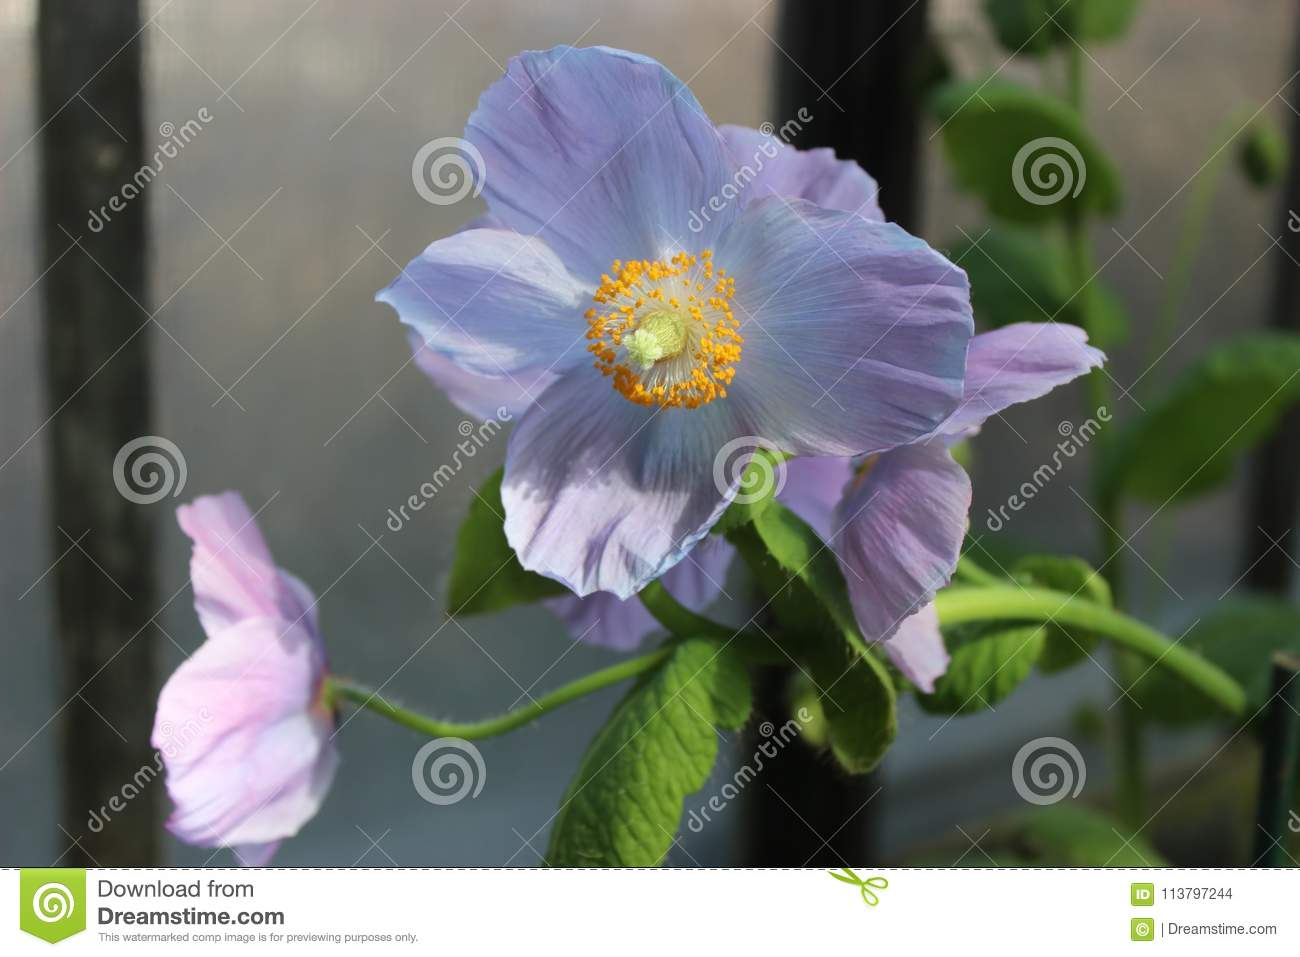 Rare and beautiful himalayan blue poppies stock photo image of only blooming in march these are beautiful blue himalayan blue poppies izmirmasajfo